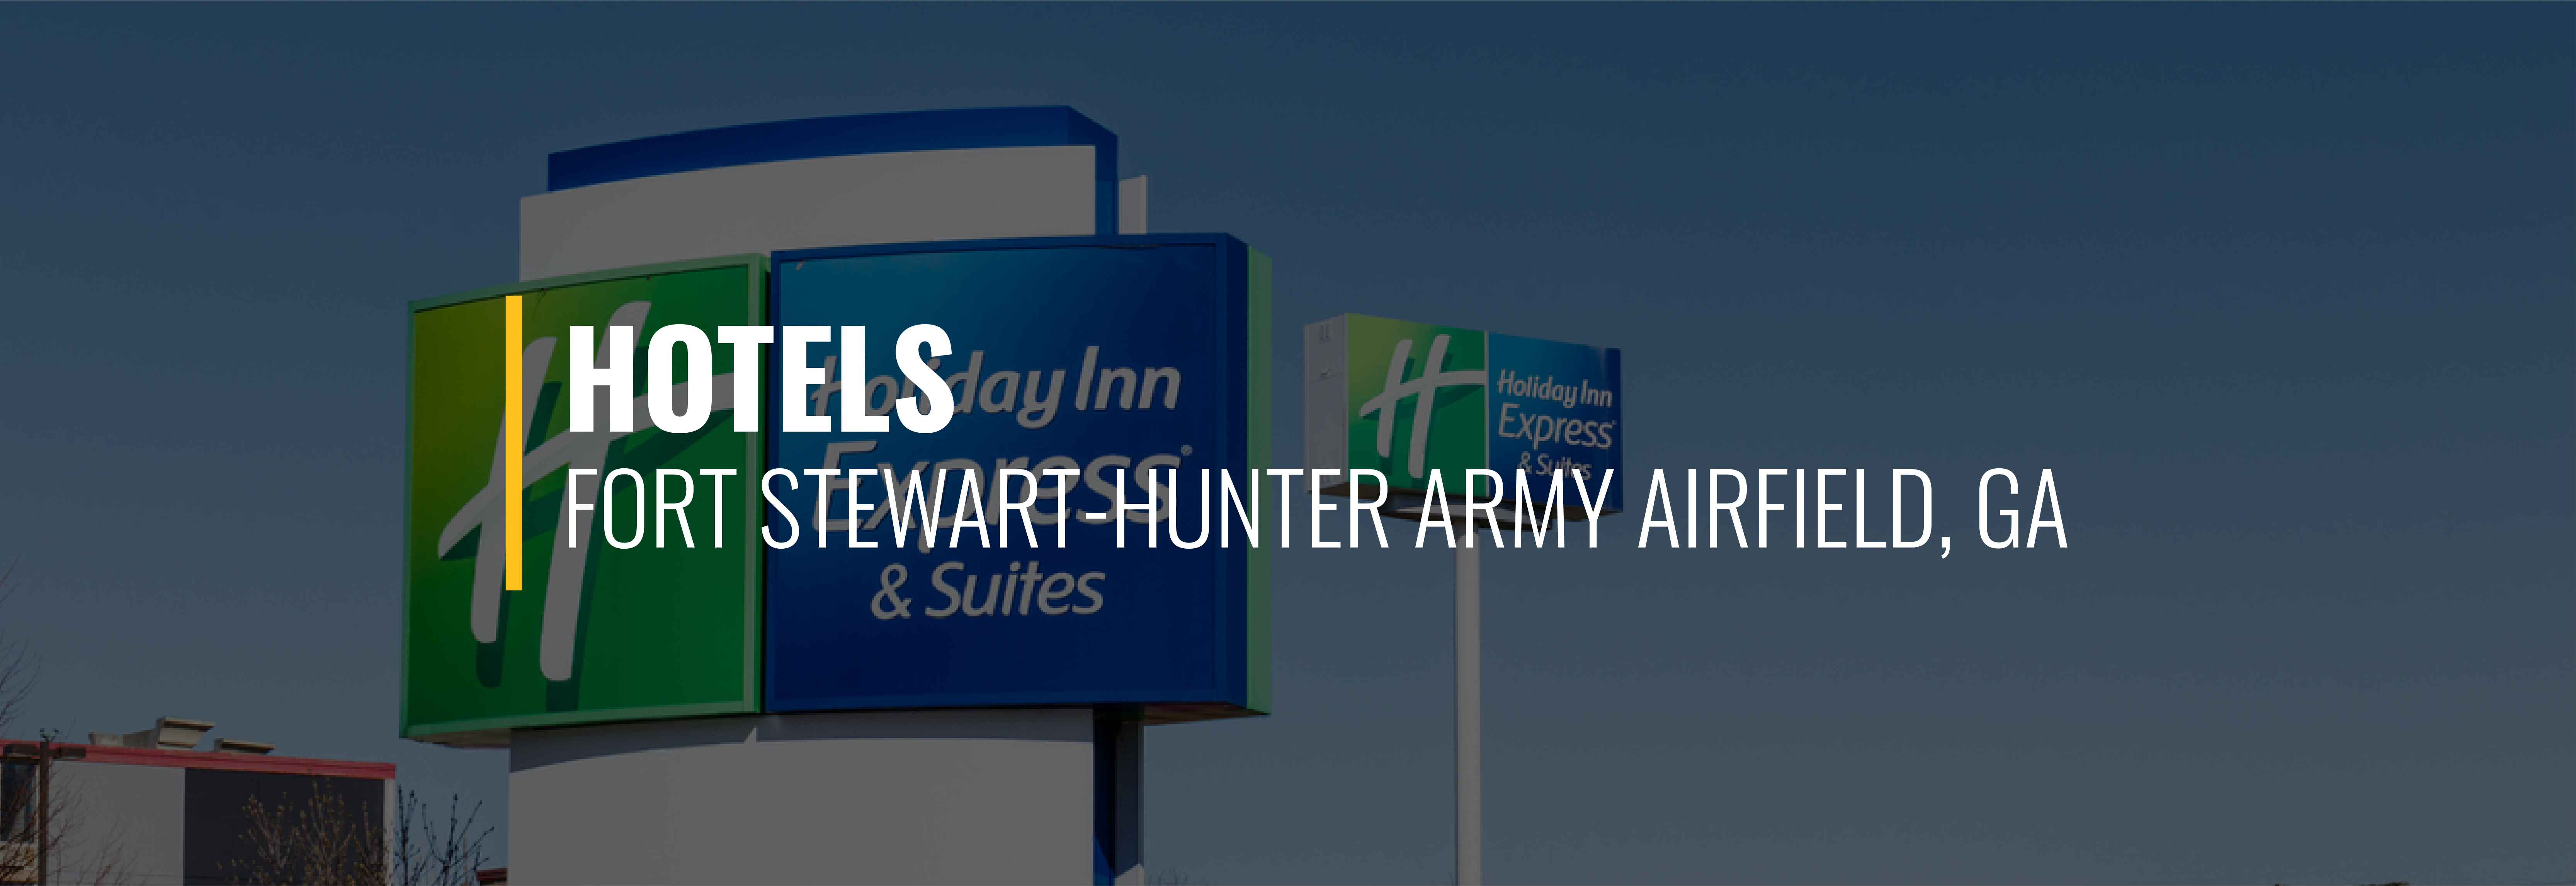 Fort Stewart-Hunter Army Airfield Hotels